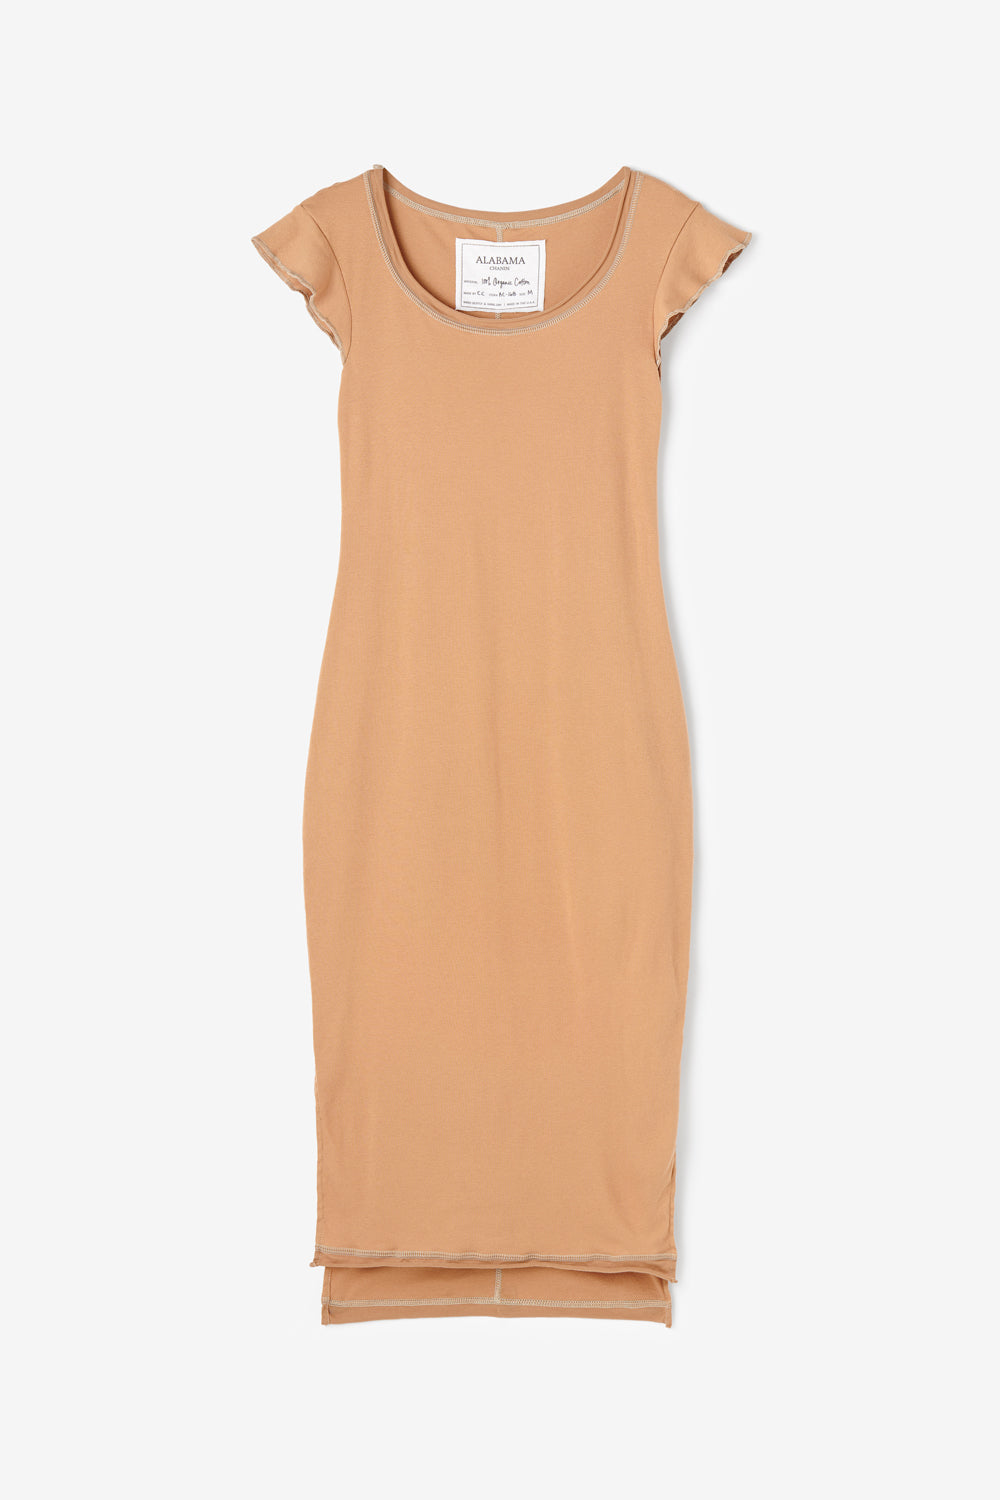 Alabama Chanin Felicity Dress in Organic Rib Knit Cotton with Flutter Sleeves